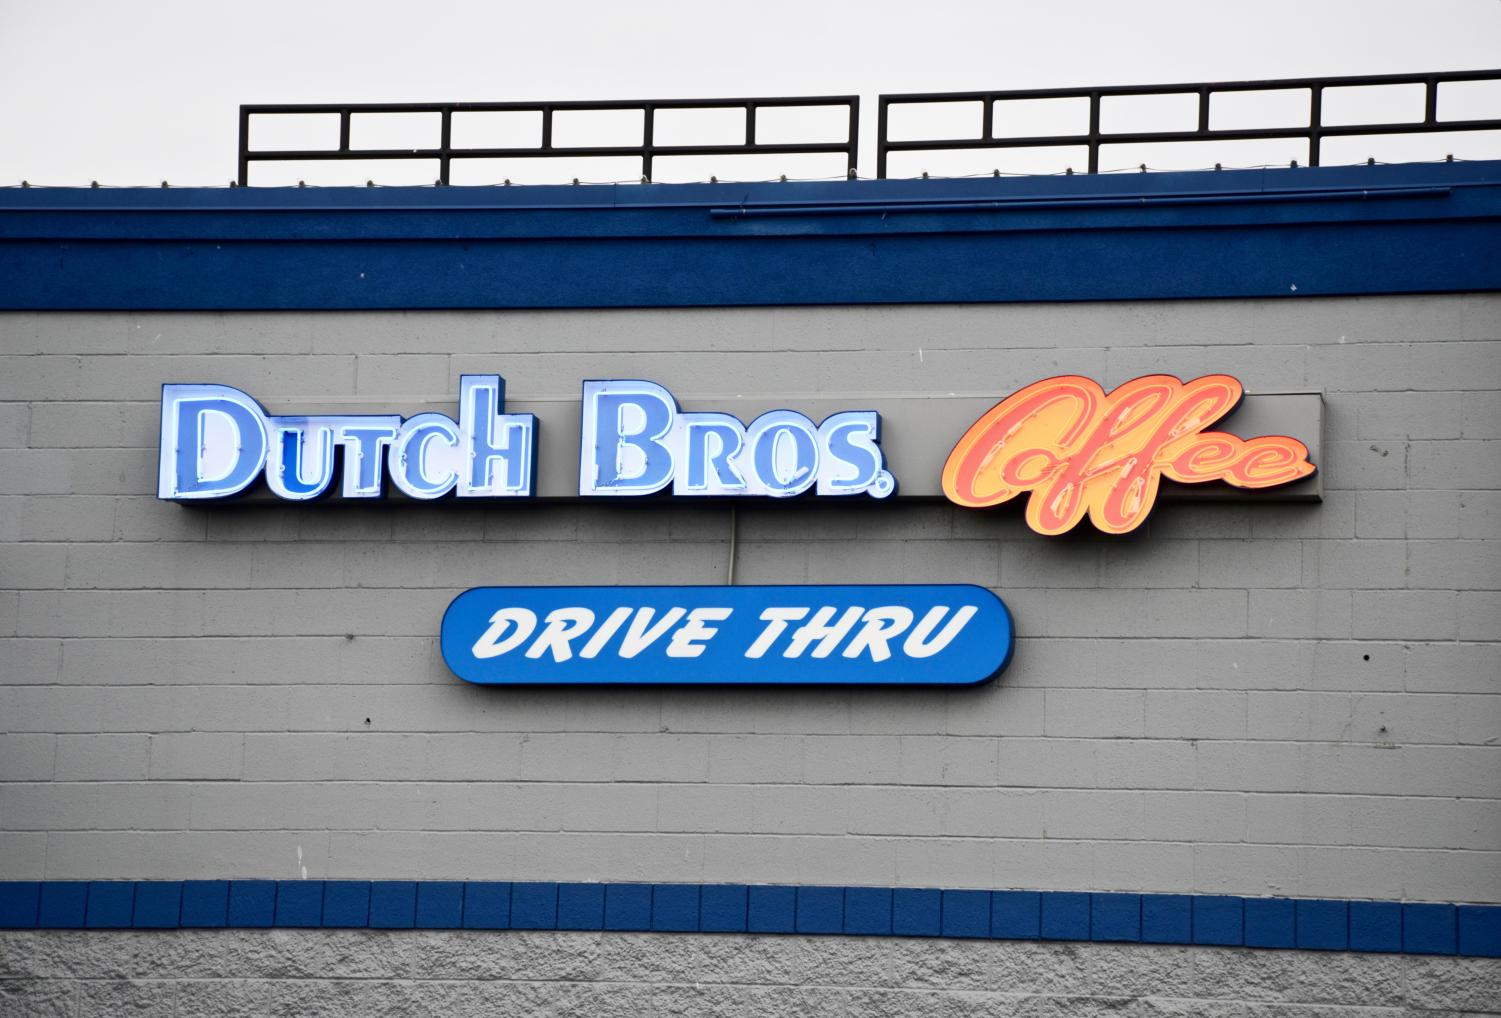 Many students from WSU are willing to travel across state lines to Moscow, Idaho, just for a cup of coffee from Dutch Bros.